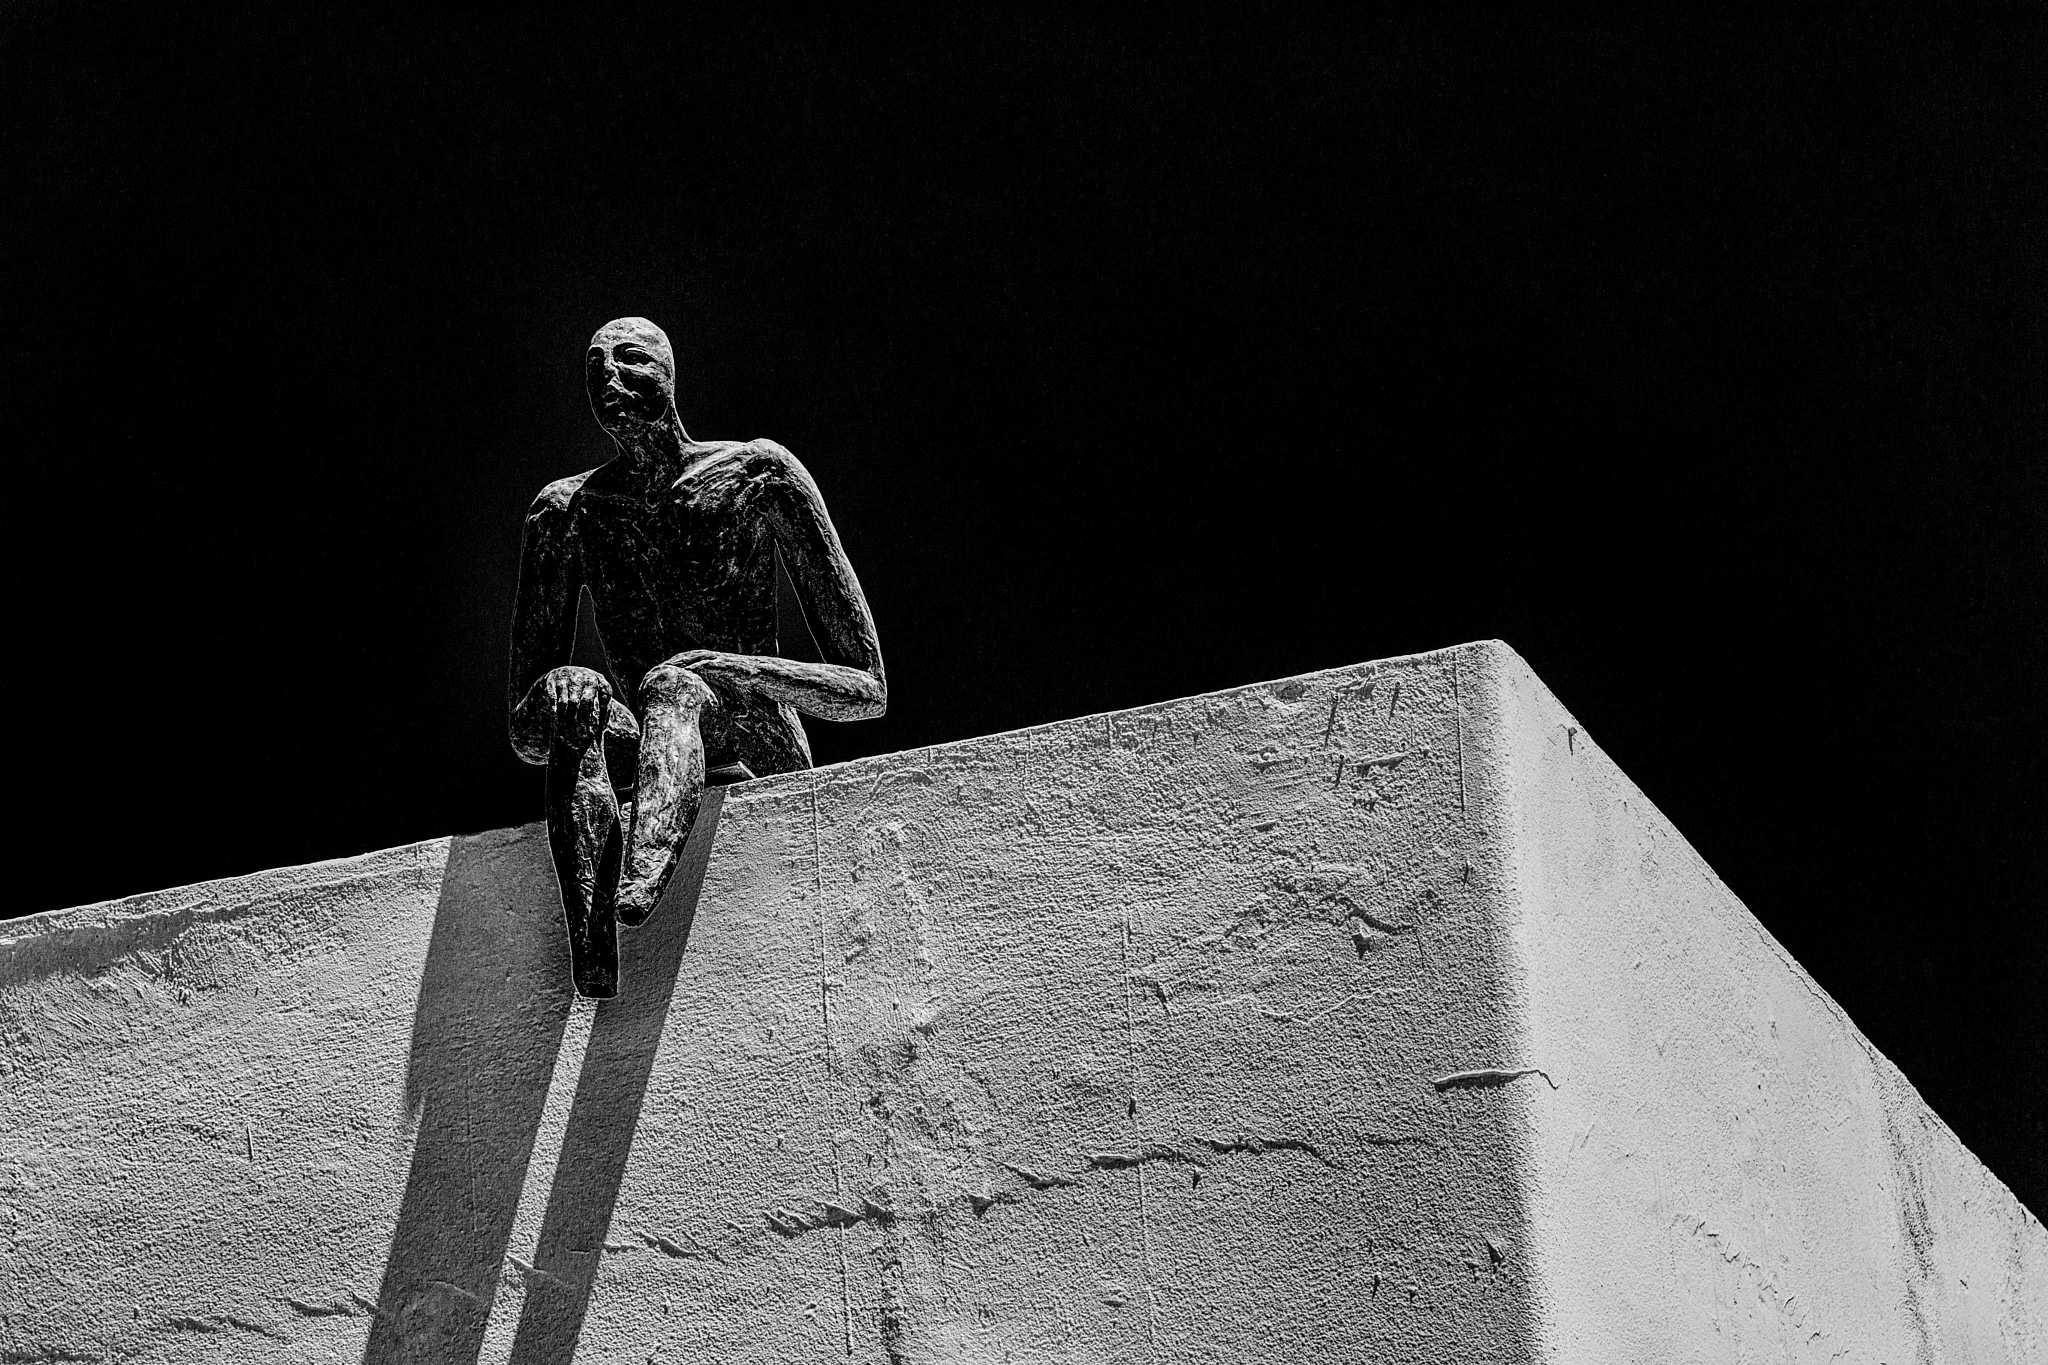 Wall Sitter by charles desrosiers